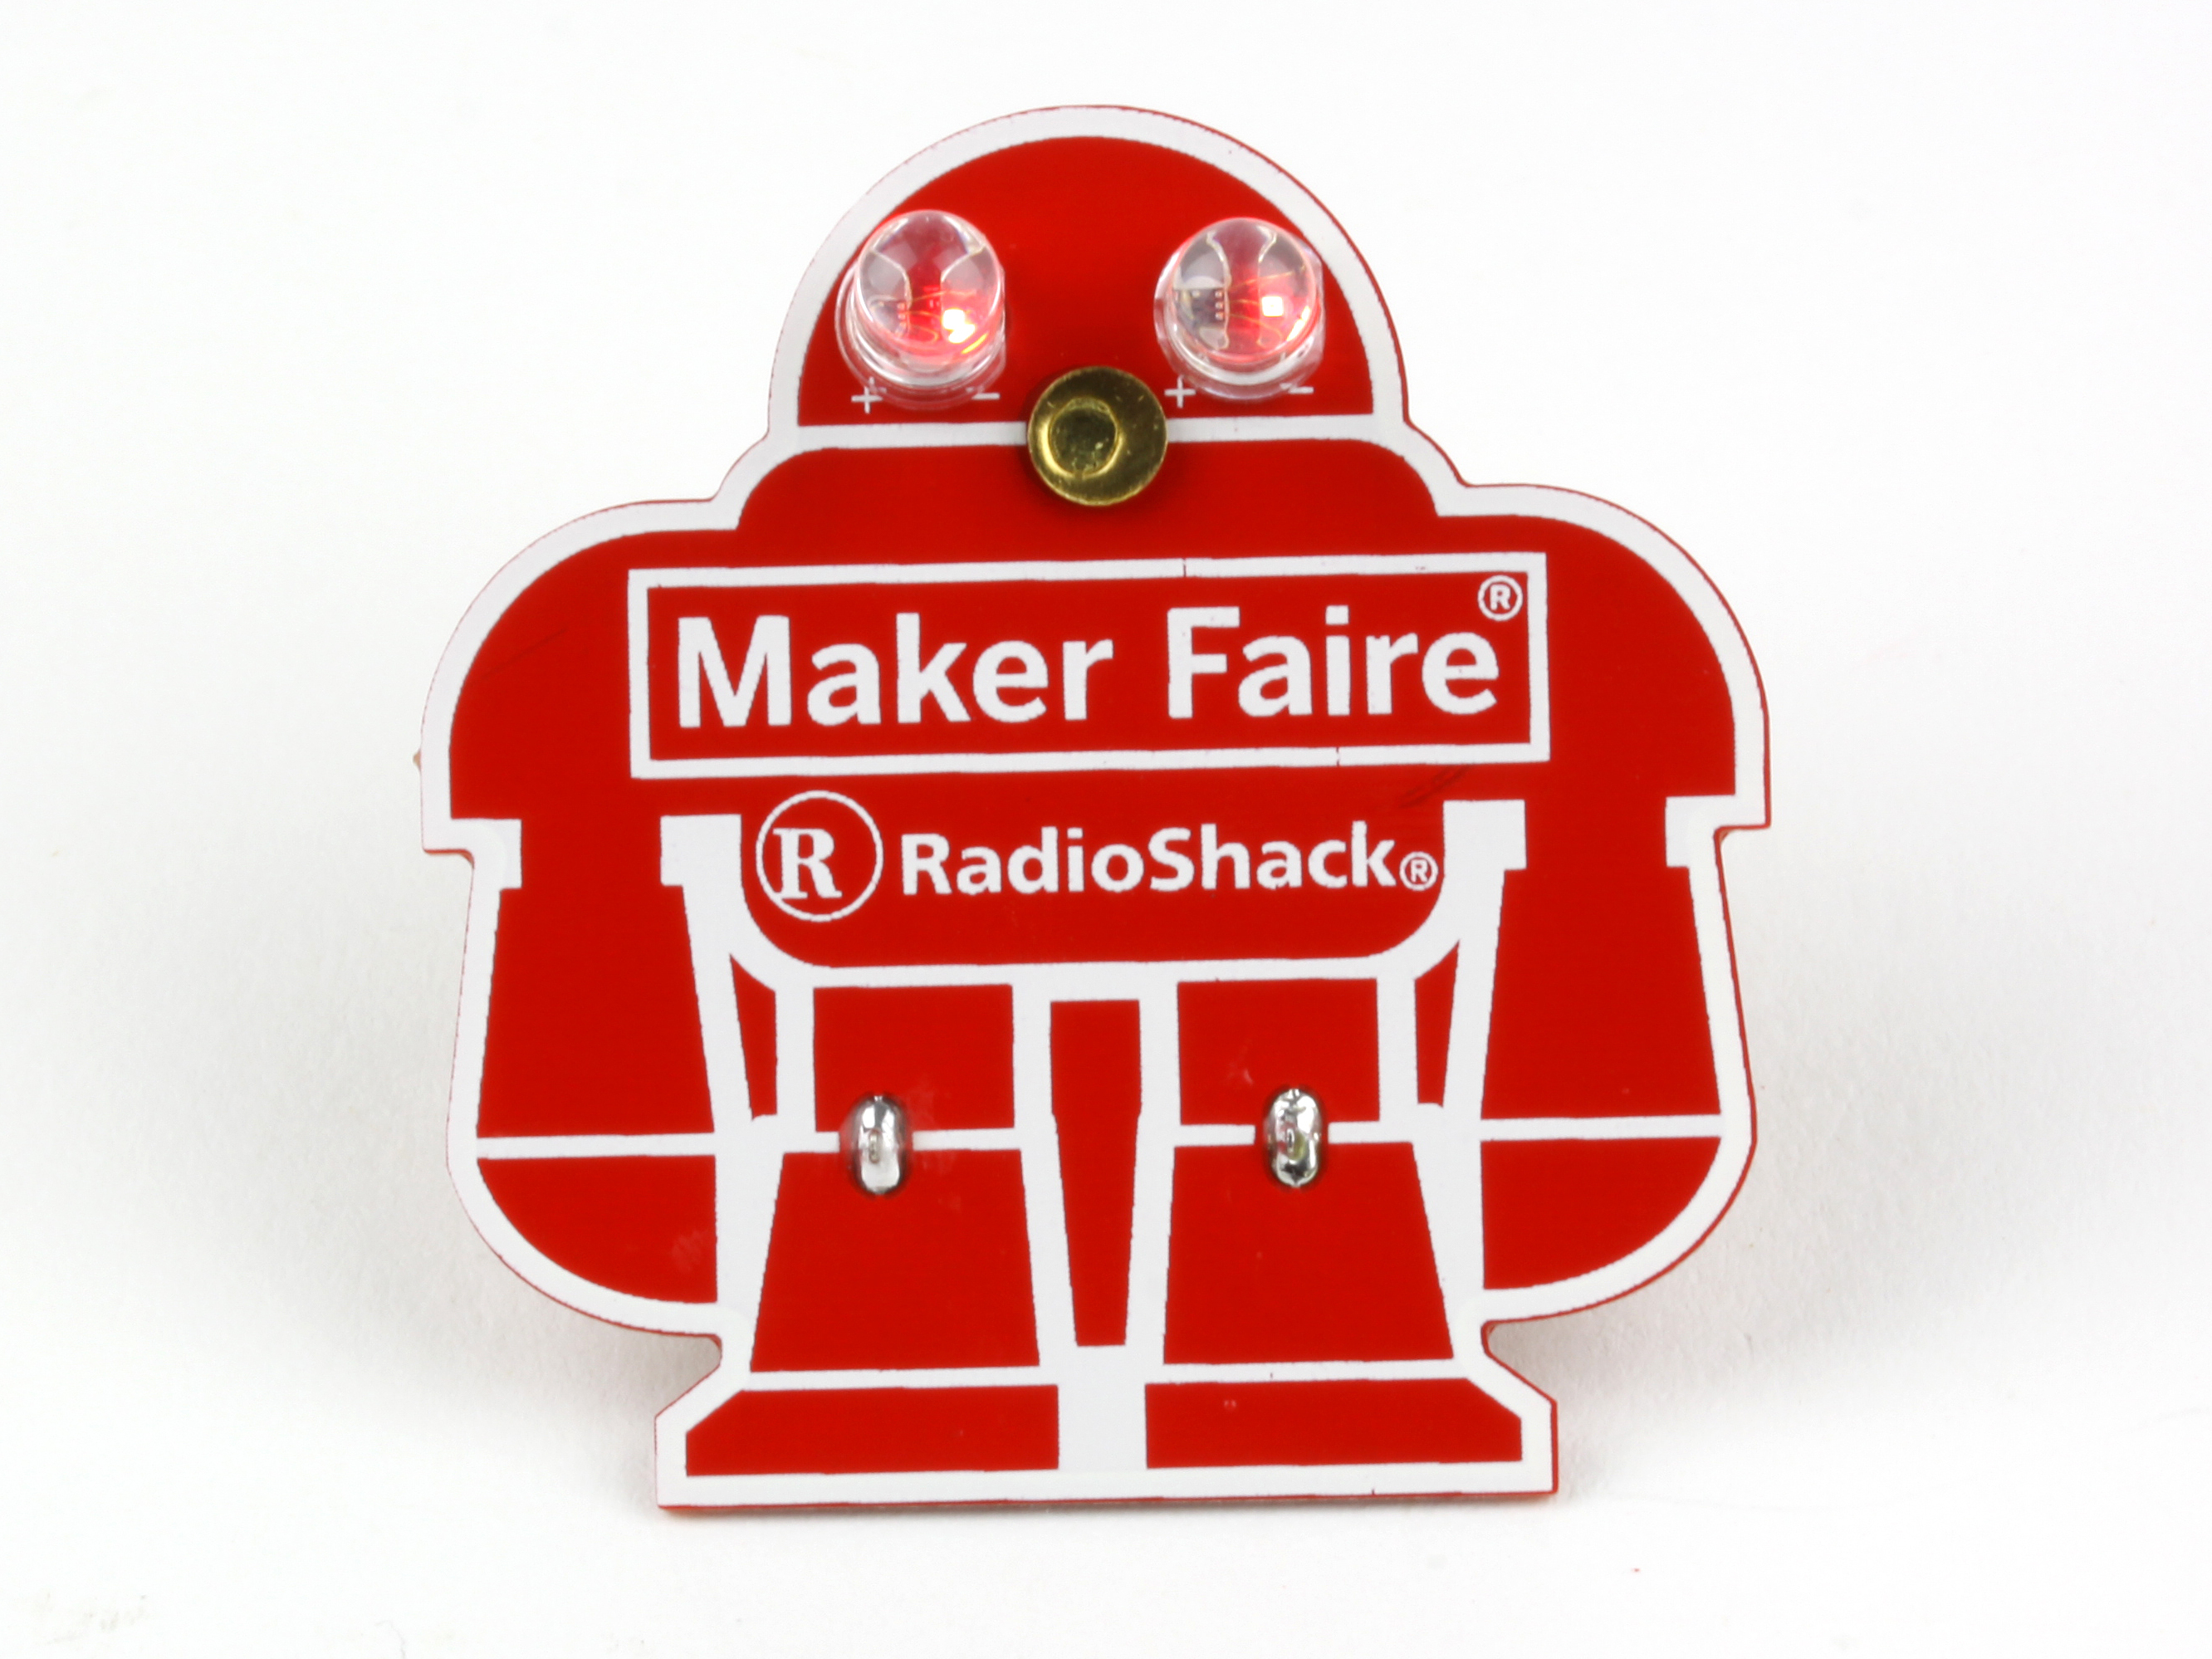 Maker Faire 2012 Electronic Skill Badge